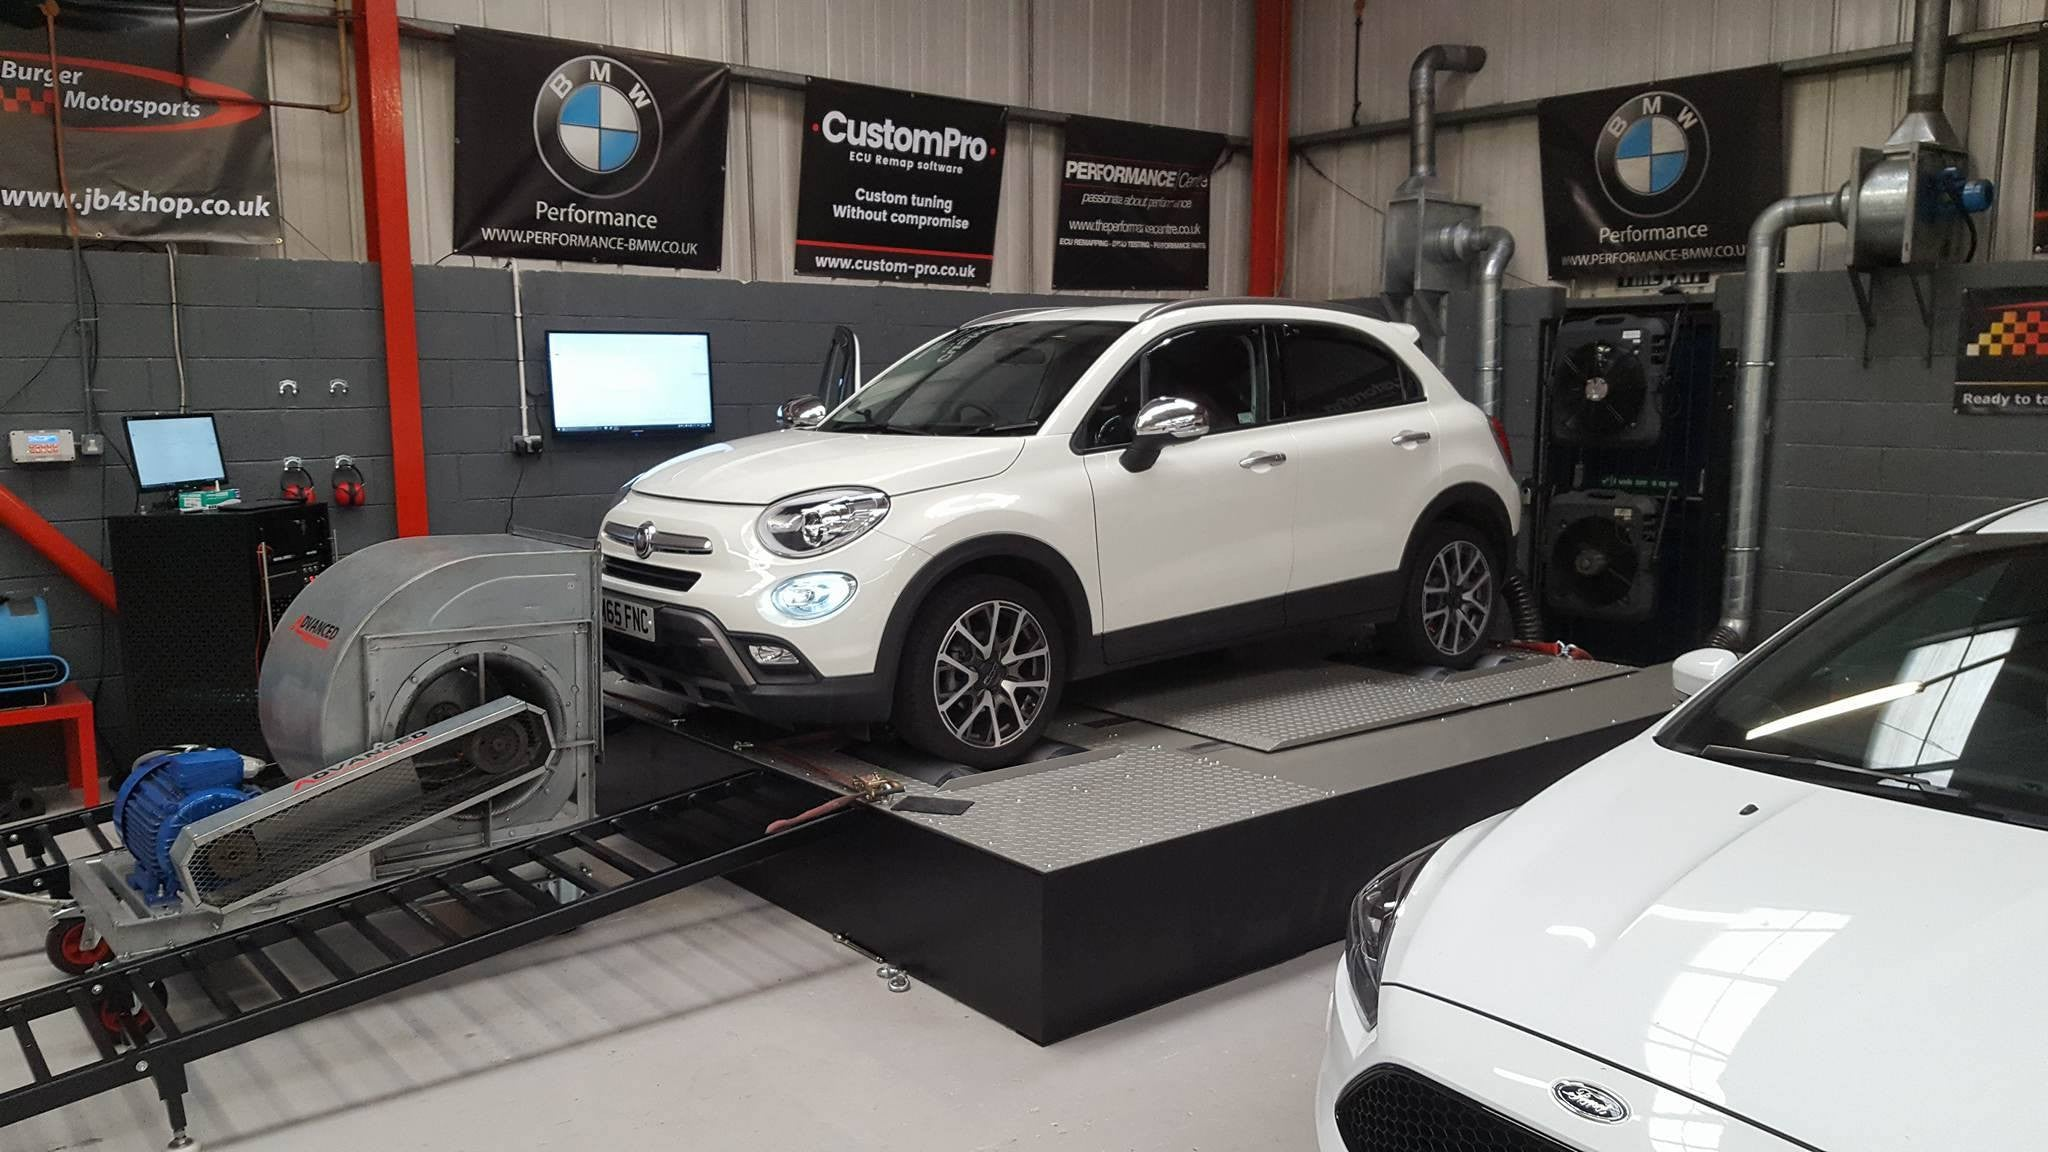 Fiat 500X - CustomPro remap